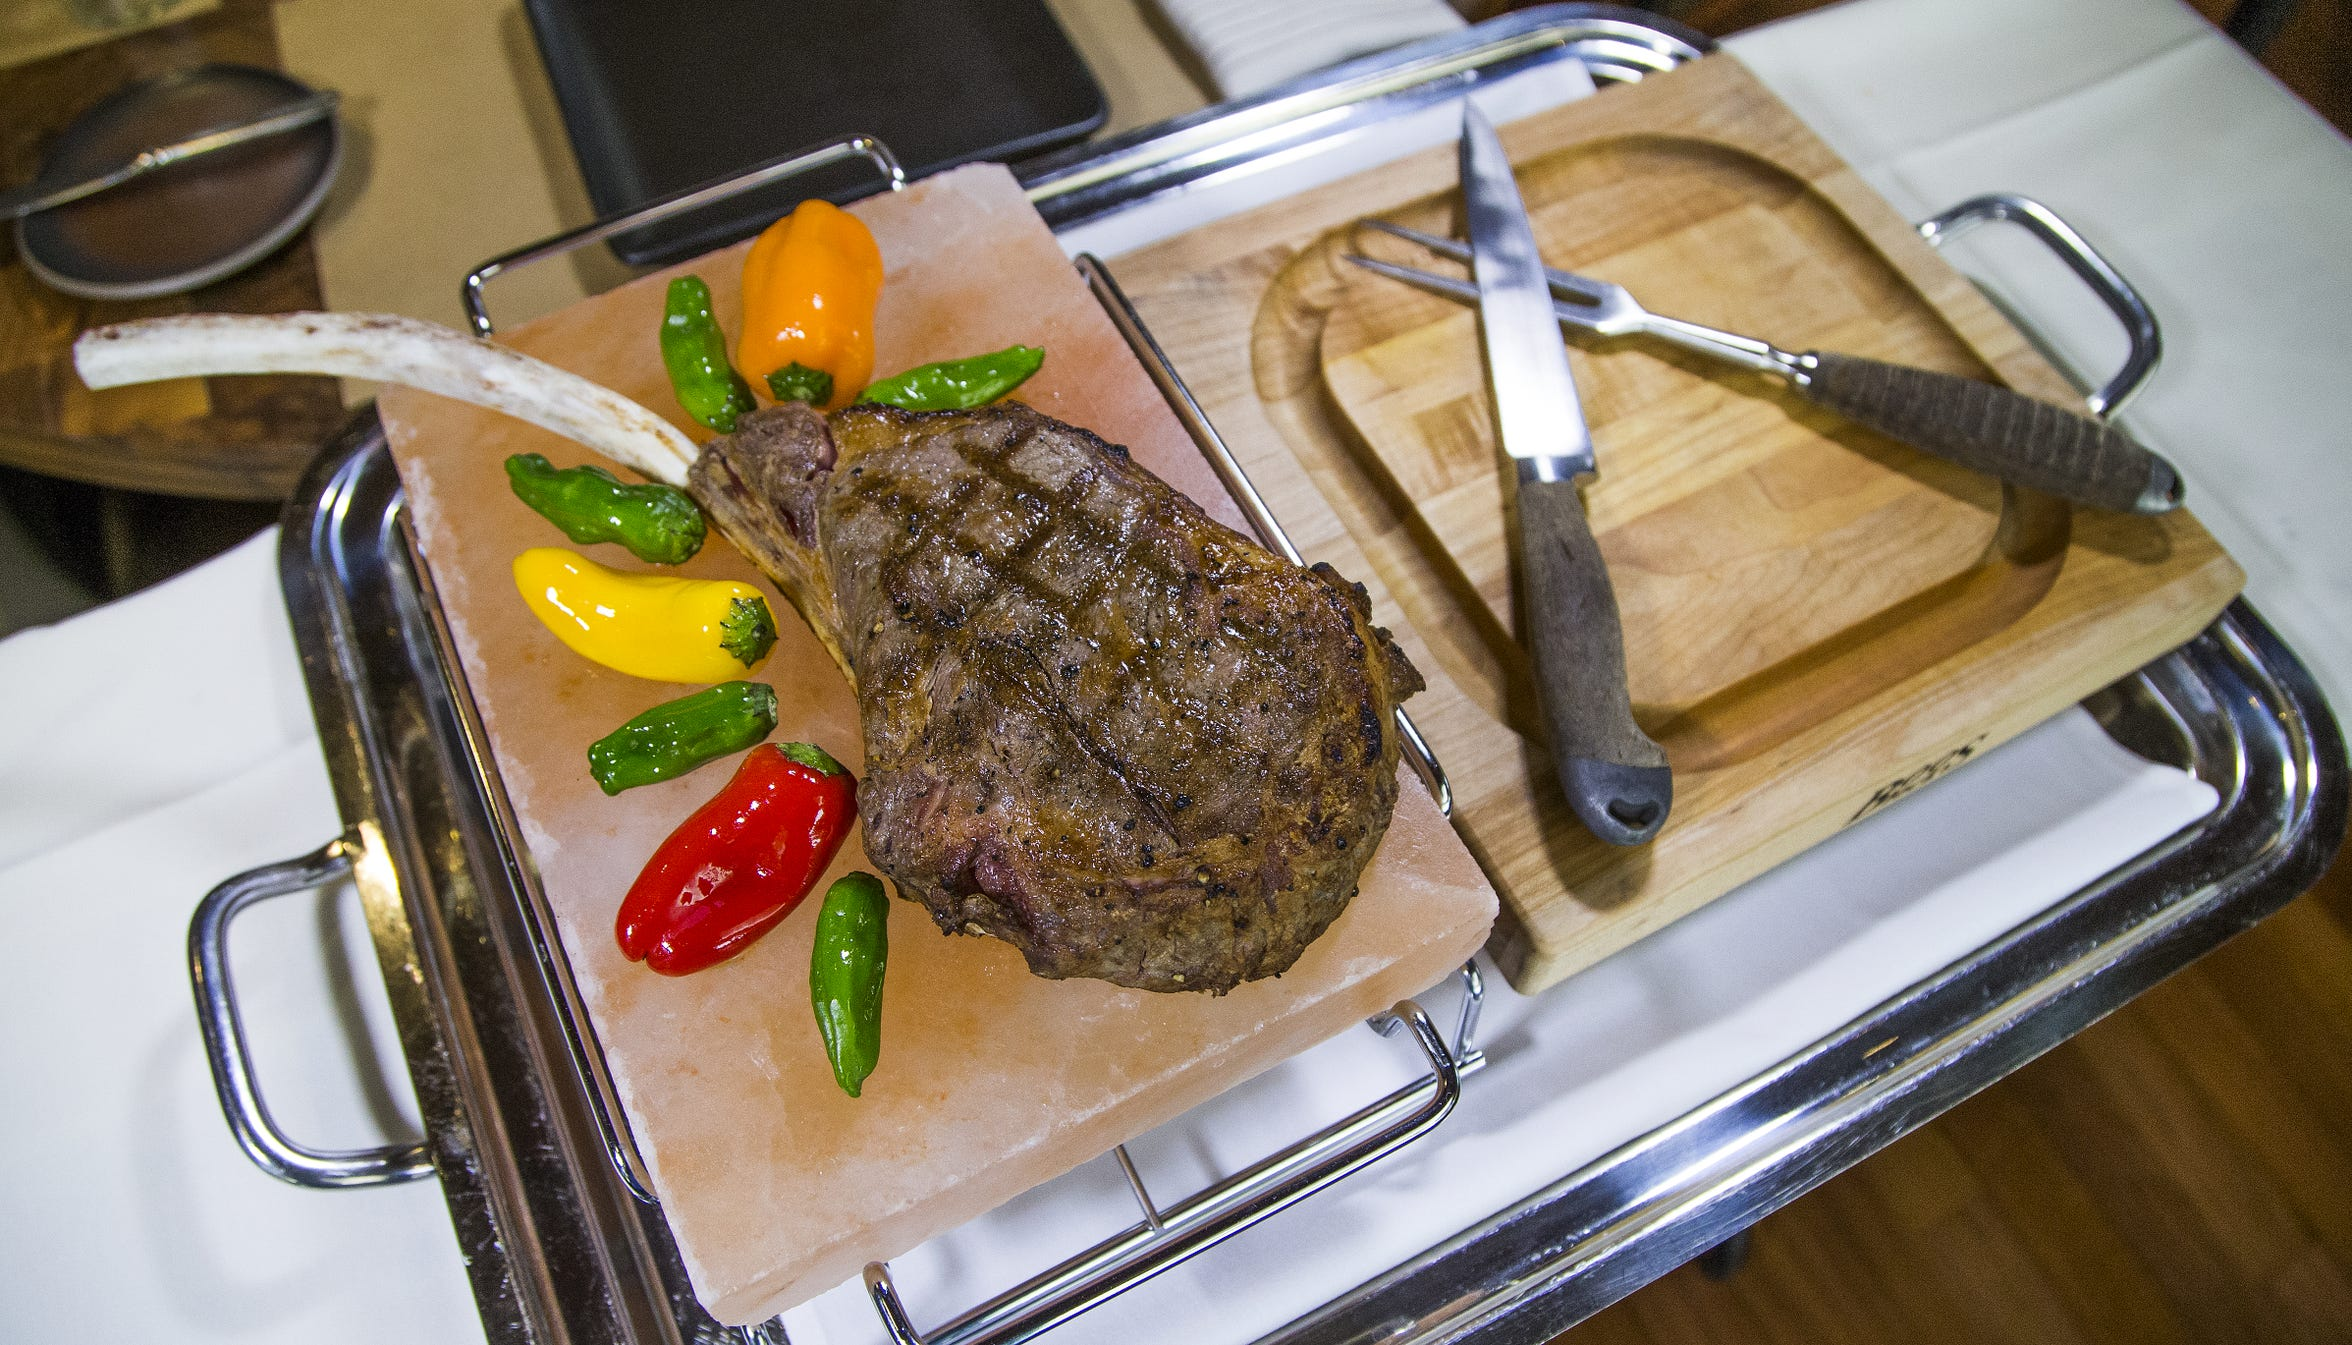 The wagyu tomahawk ribeye from J&G Steakhouse.